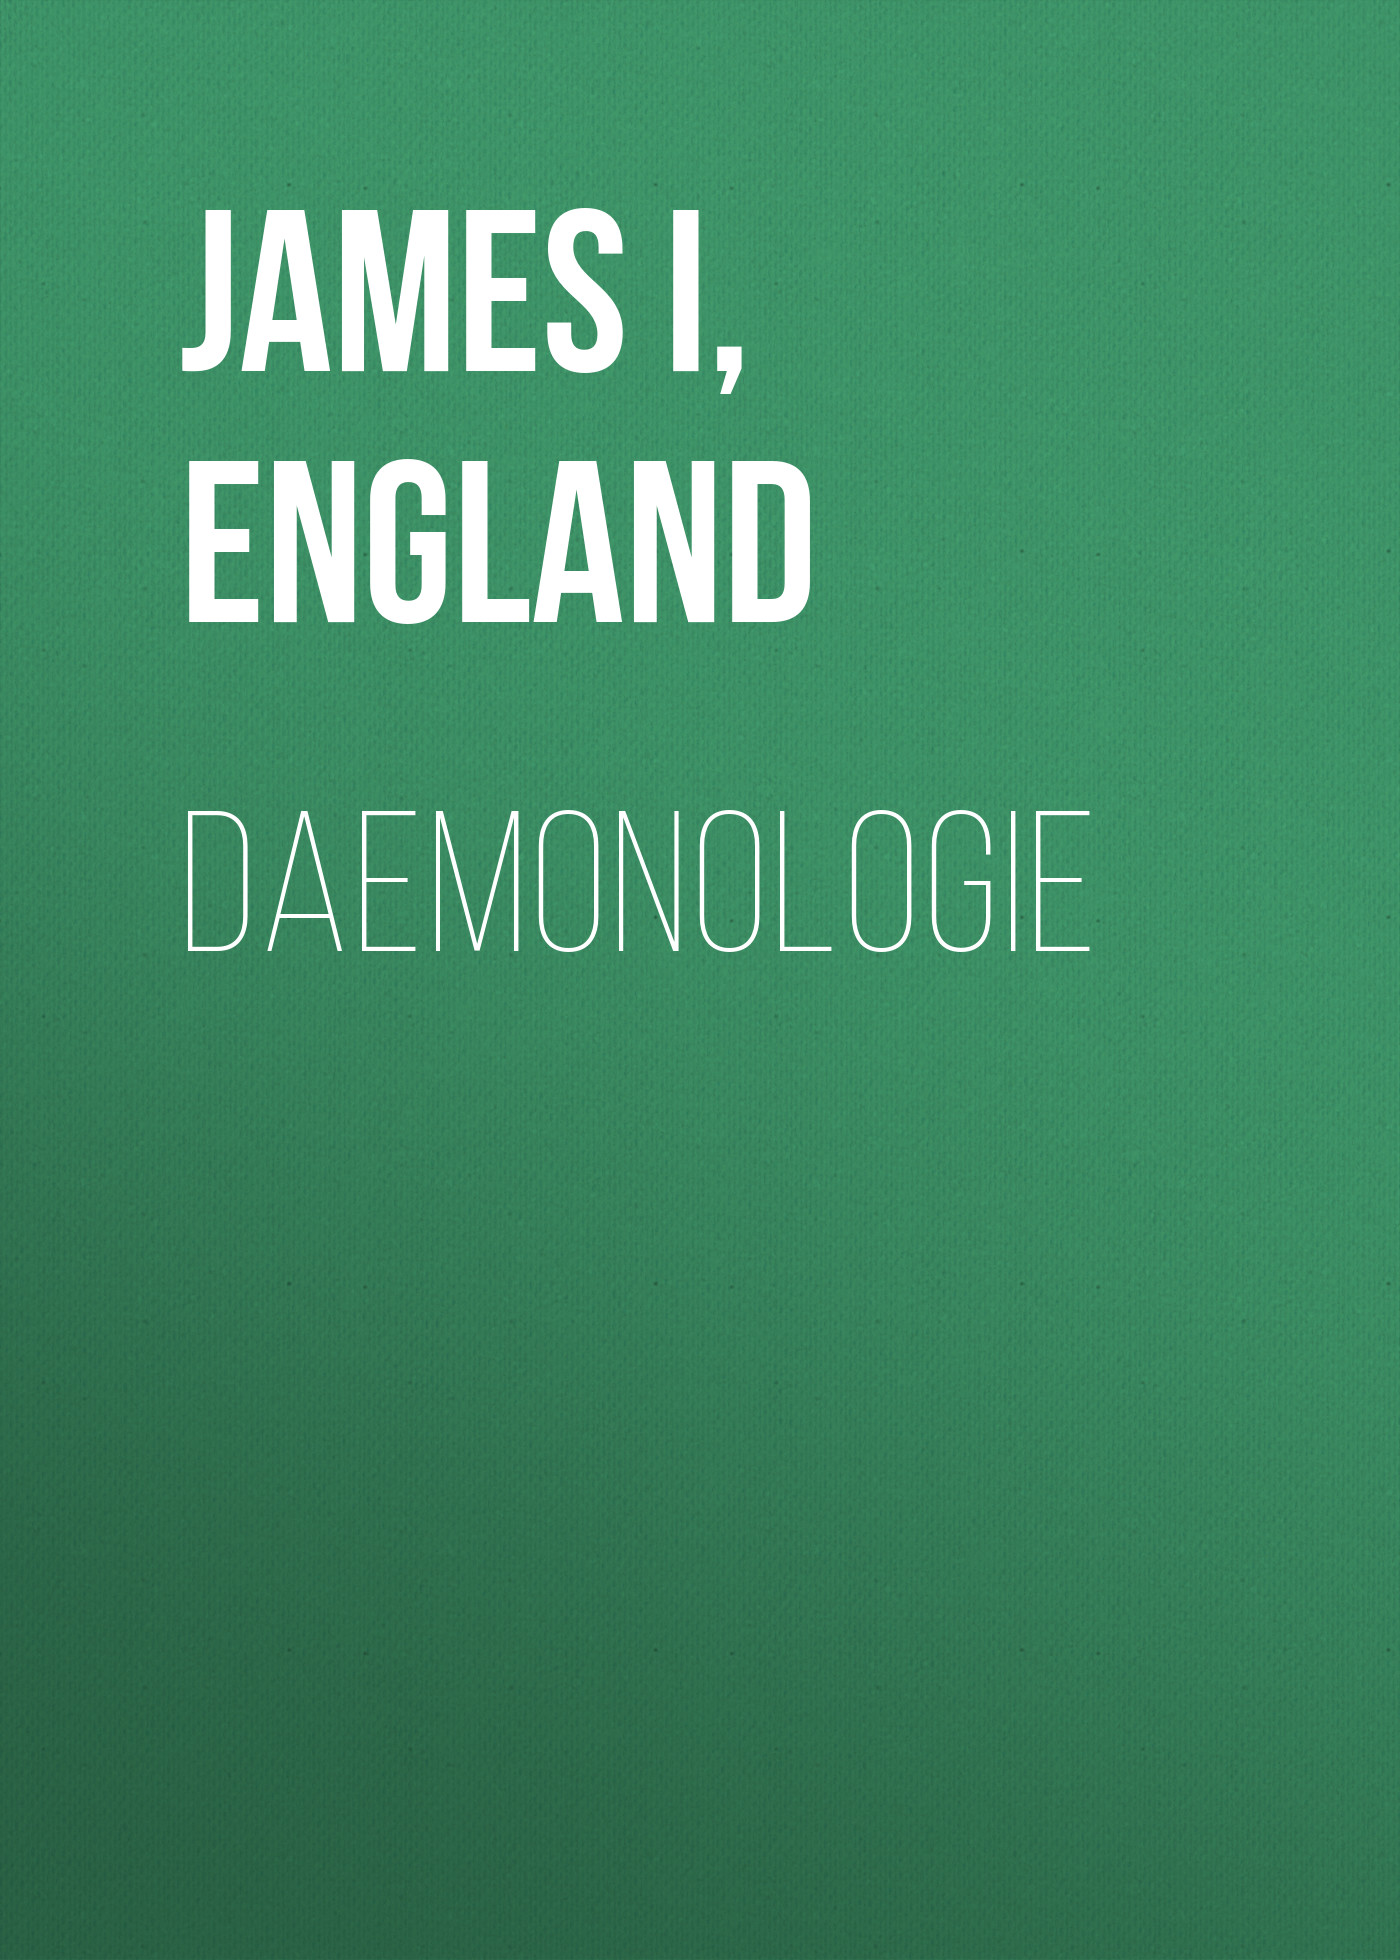 James I, King of England Daemonologie king james nkum power of sex for singles